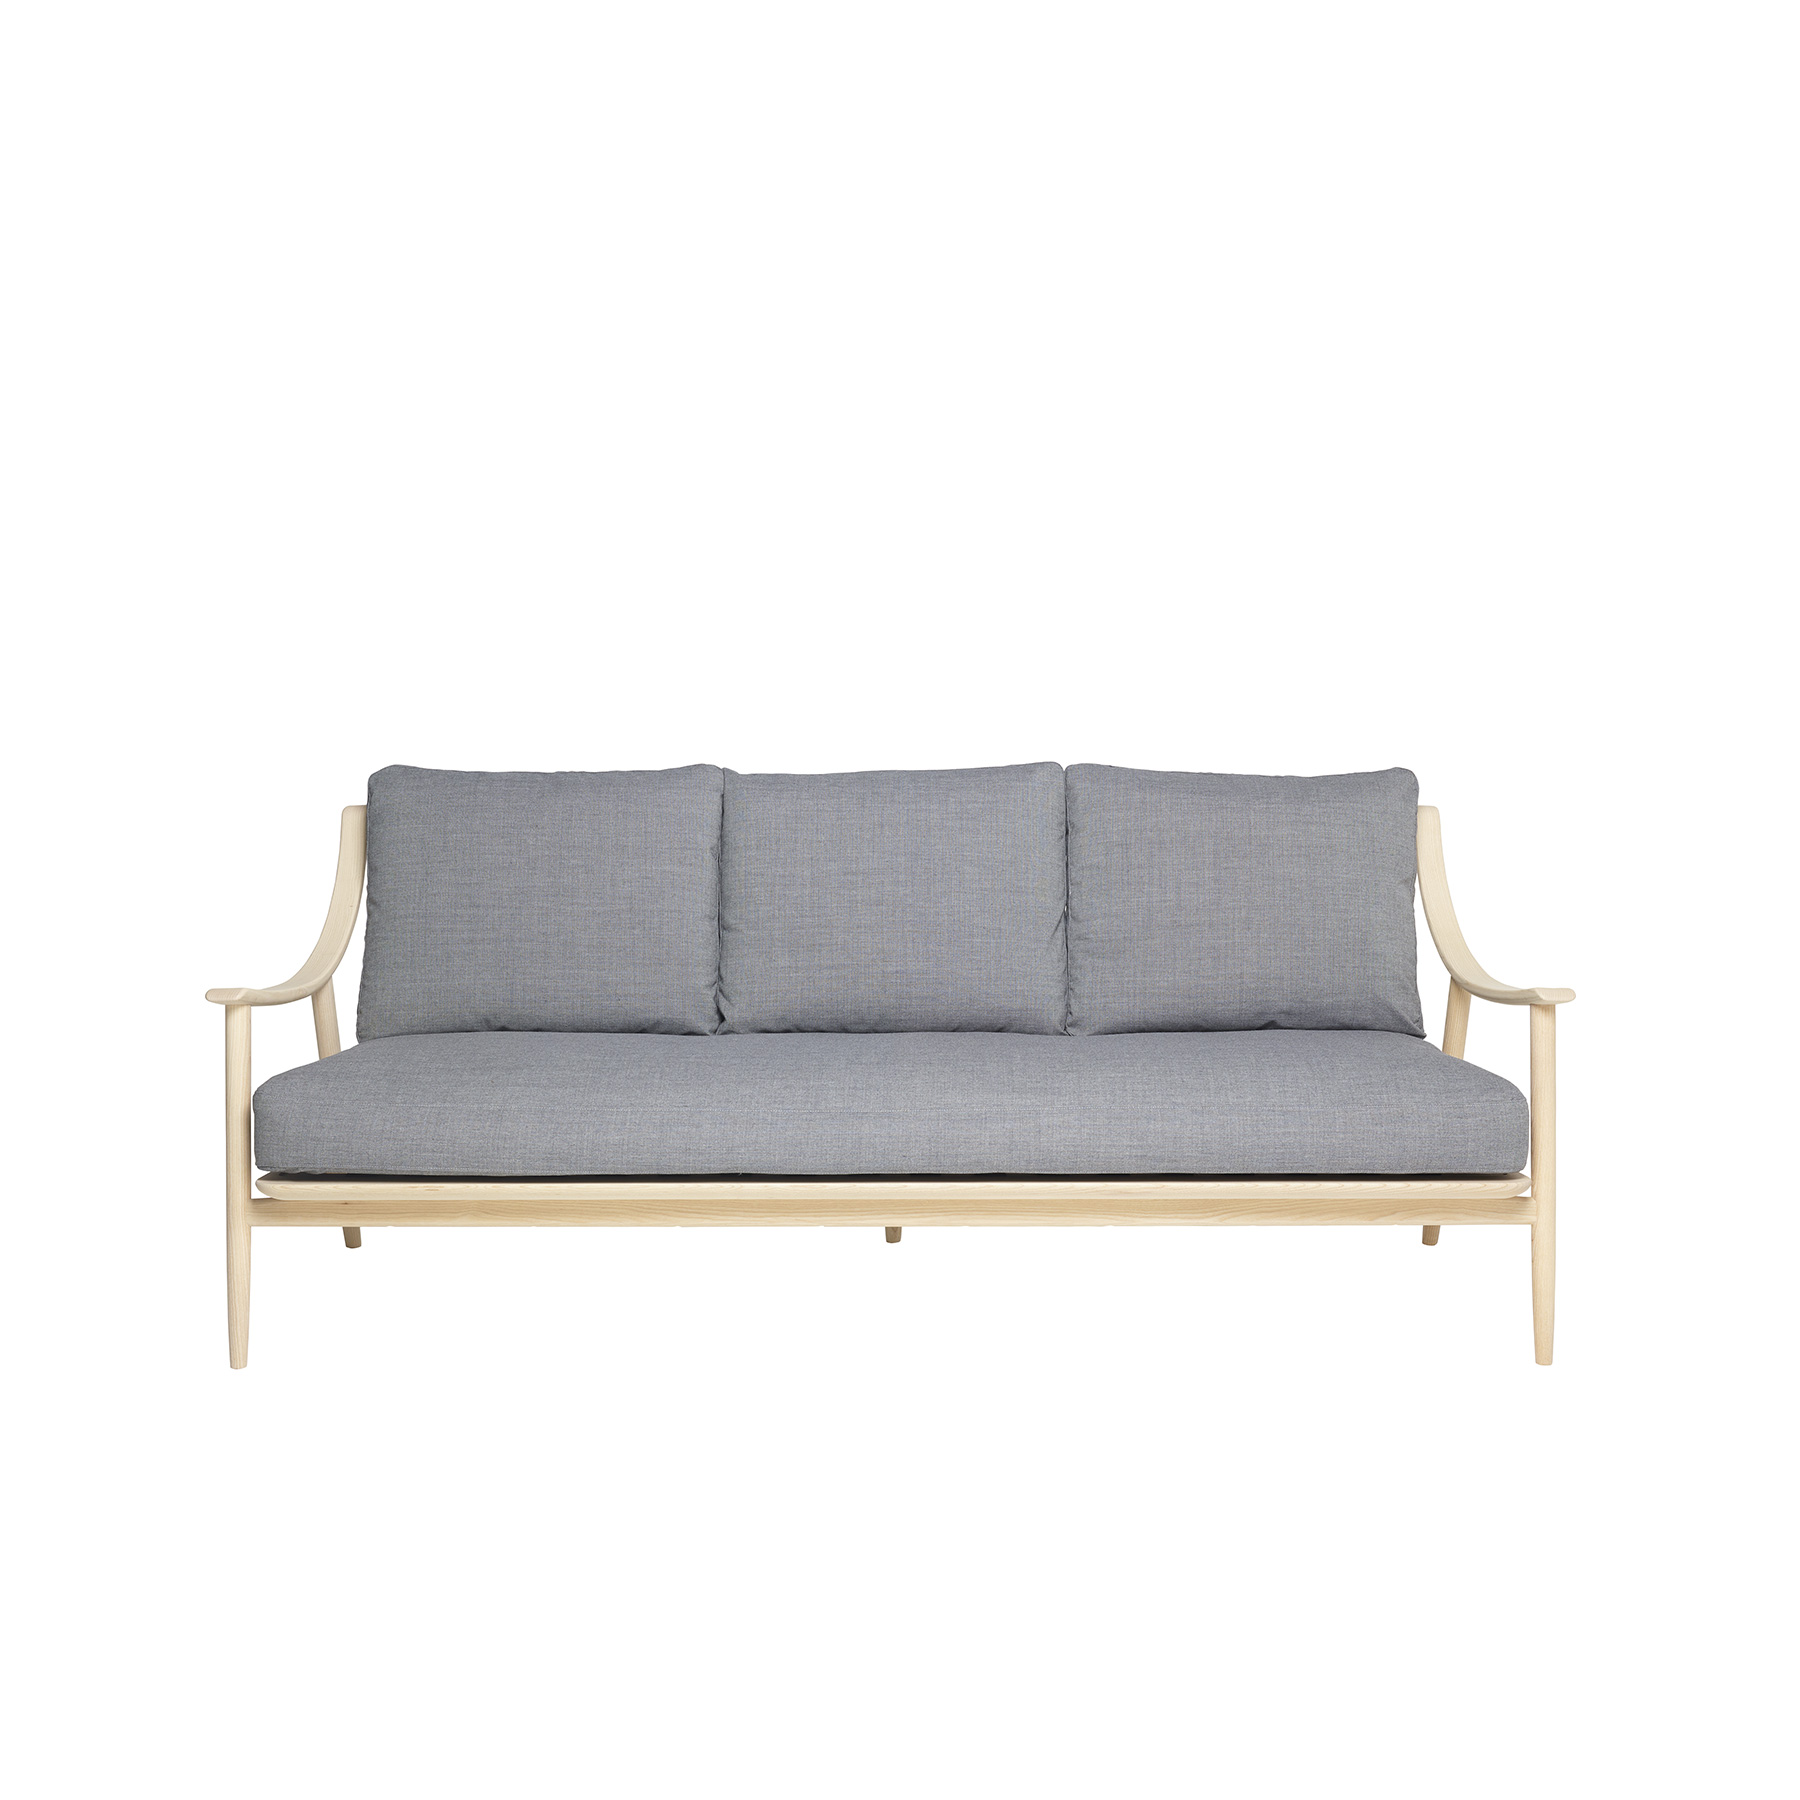 Marino Large Sofa - The Marino chair created in solid ash timber references the qualities and features of Ercol design classics through considered design aesthetic. Its elegance and flowing lines, featuring turned elements, combined with exceptional craftsmanship create a striking, contemporary armchair. The Marino collection is inspired by the Ercol design classics, its smooth flowing elegant lines are created by steam bending the solid ash arms, using traditional craftsmanship and modern furniture making techniques, to create a strikingly contemporary and comfortable range. The Marino sofa created in solid ash references the qualities and features of ercol design classics. The smooth elegant and flowing lines are created through traditional craft, including steam bending solid timber and modern furniture making skill and techniques. The feature turned spindles, and deep cushioning combine to create a striking and contemporary sofa that is comfortable, seating two with ease. The Marino collection is finished in your choice of wood finish that protects the timber whilst enabling you to choose the look to match your style and décor.   | Matter of Stuff